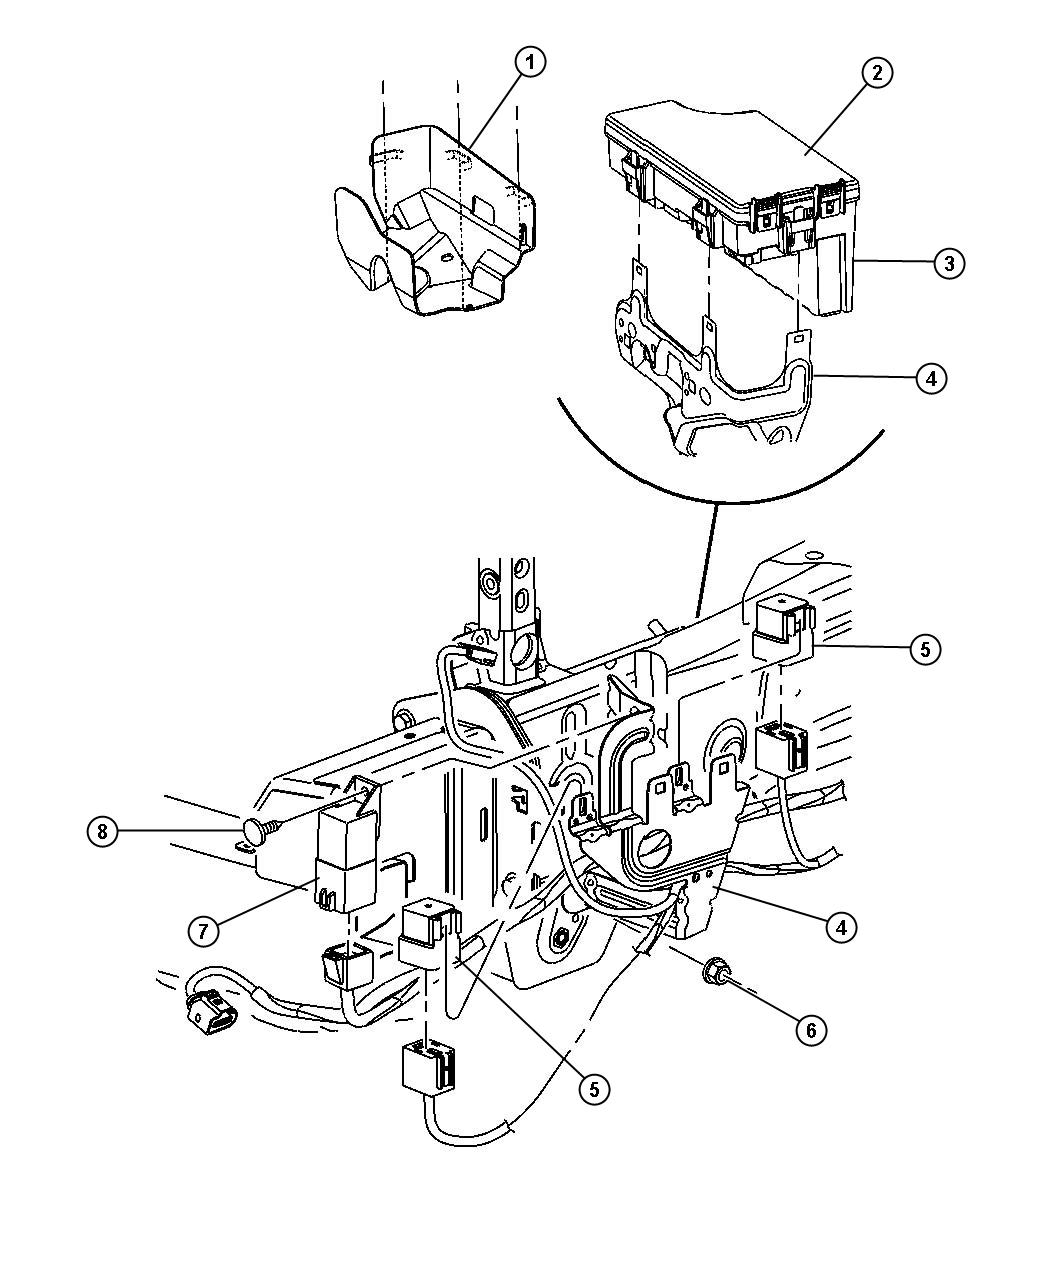 Dorman ignition switch wiring diagram dorman ignition switch wiring diagram jeep jeep wrangler